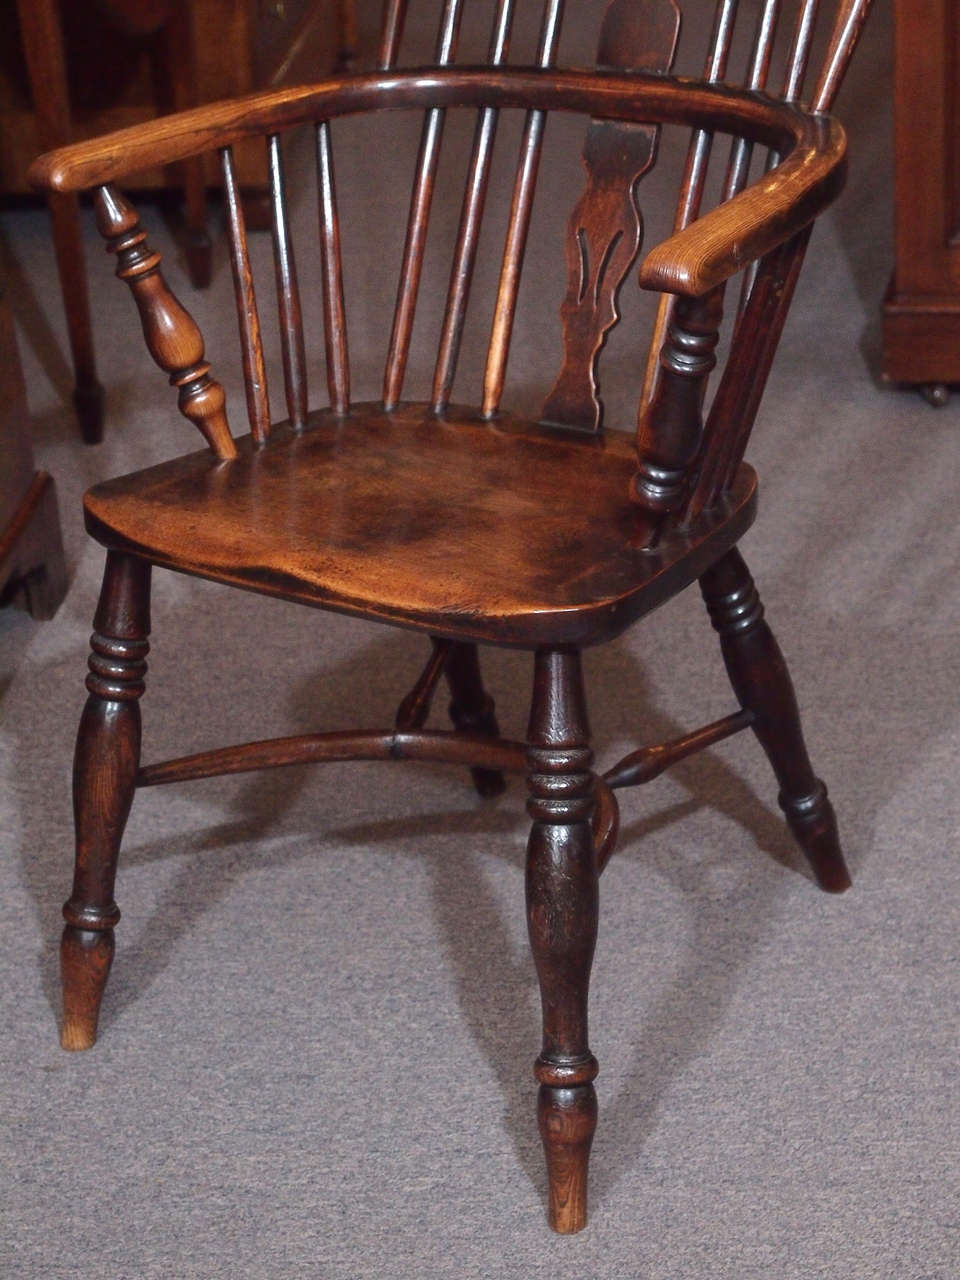 19th Century Antique English elm and ash Windsor chair with crinoline  stretcher. For Sale - Antique English Elm And Ash Windsor Chair With Crinoline Stretcher